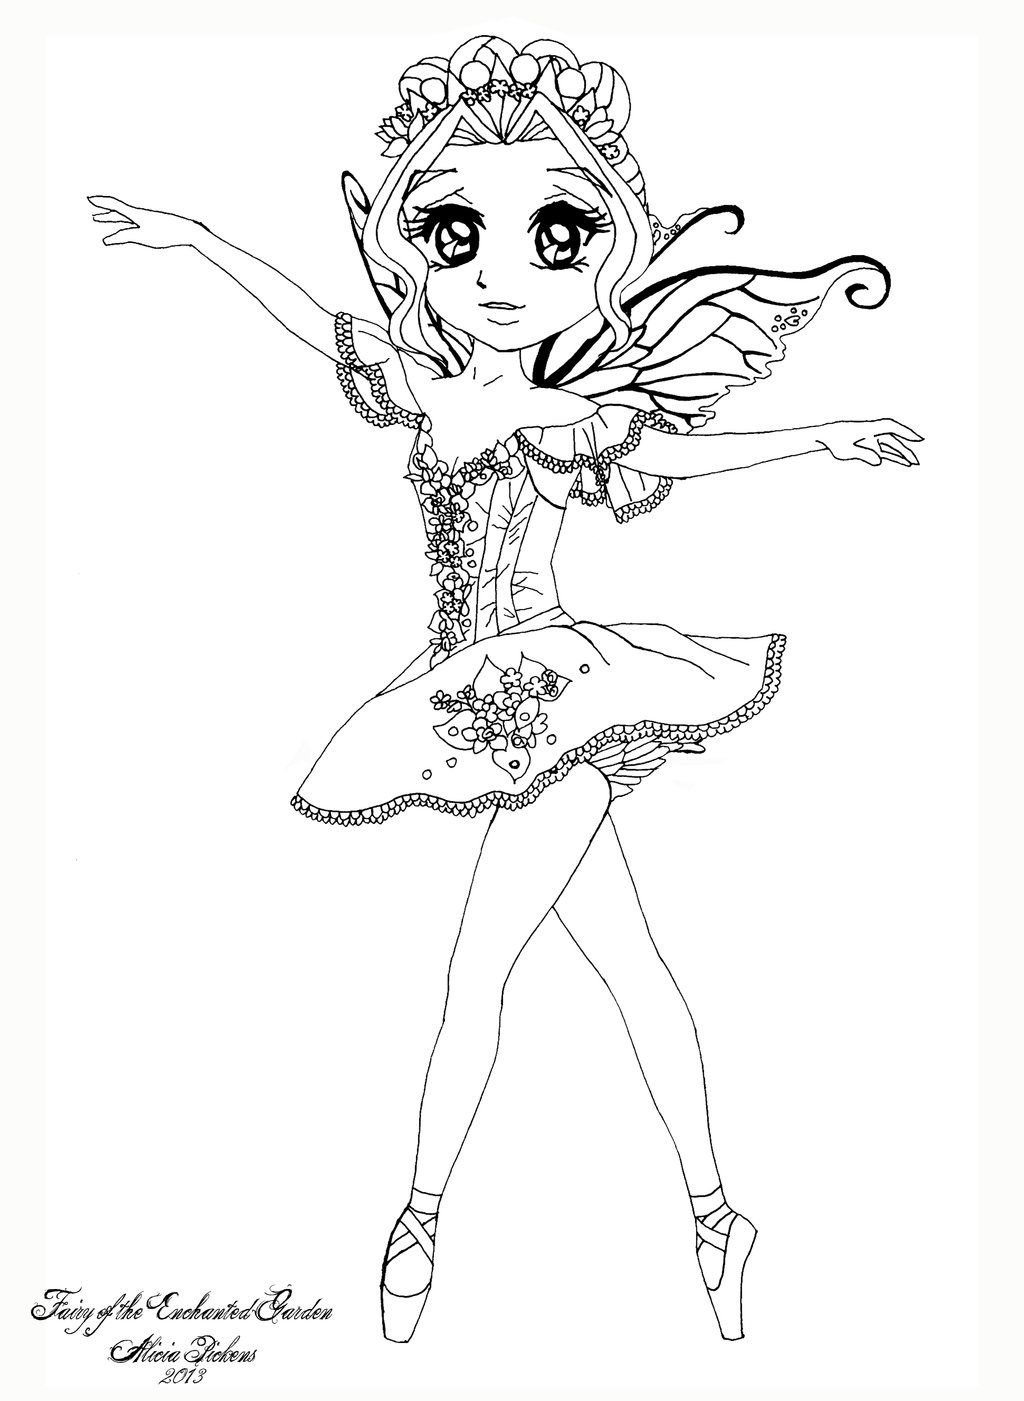 enchanted fairies coloring pages | Fairy of the Enchanted Garden by LicieOIC.deviantart.com ...